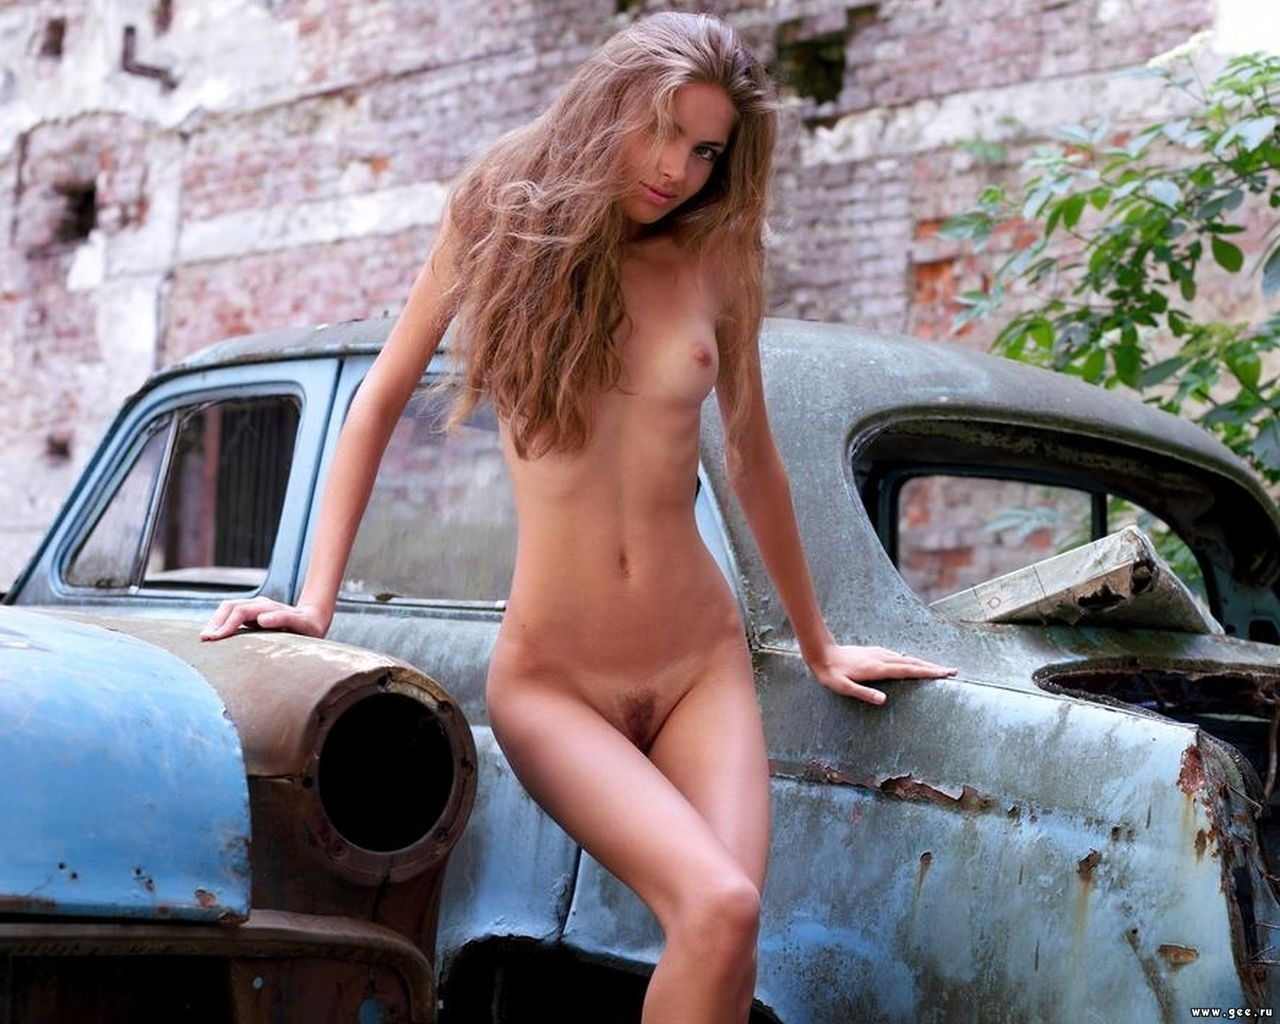 Will naked women with car